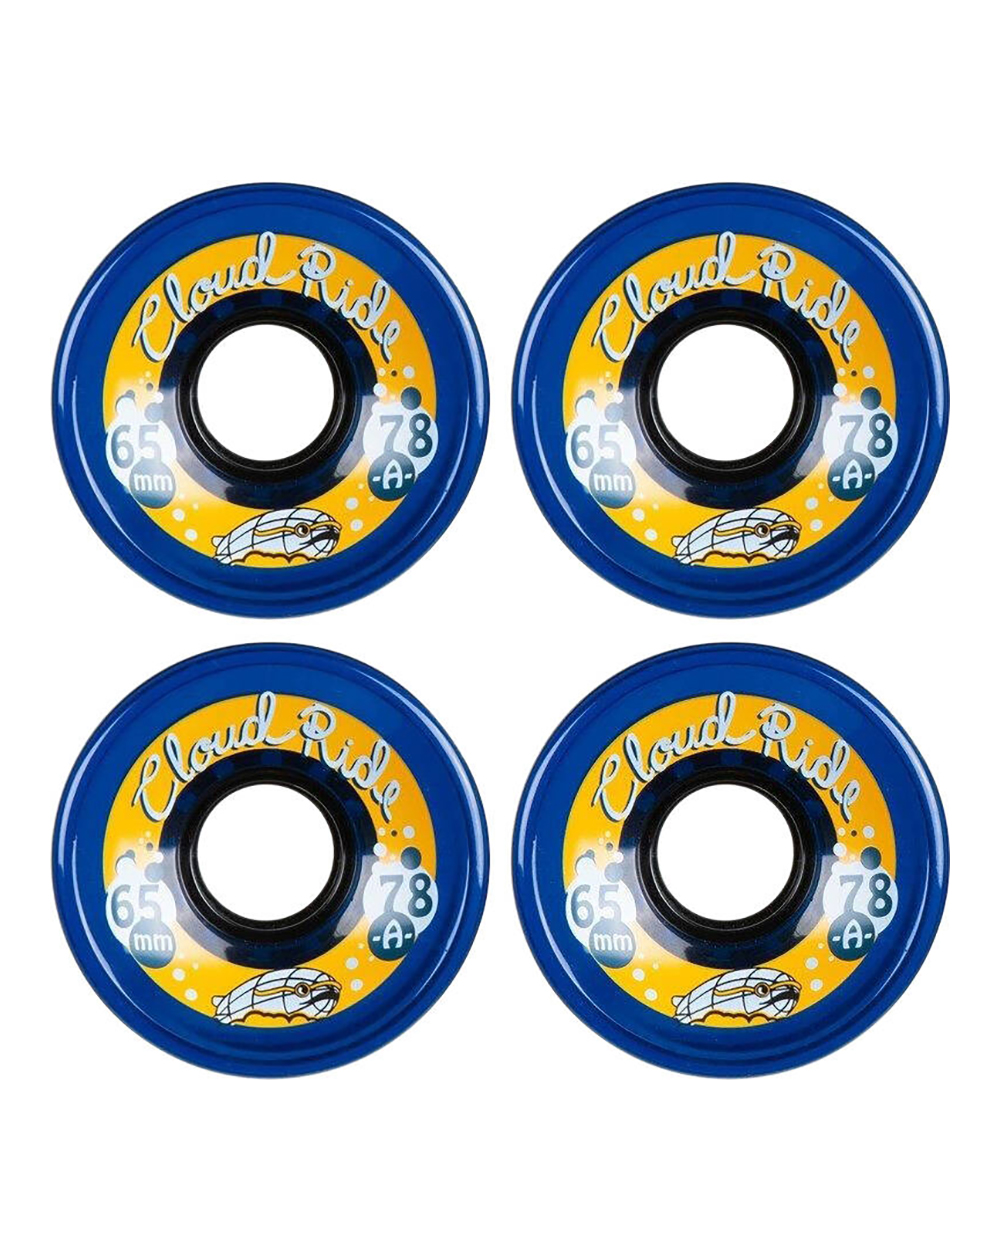 Cloud Ride Street 65mm Cruiser Wheels Midnight Blue